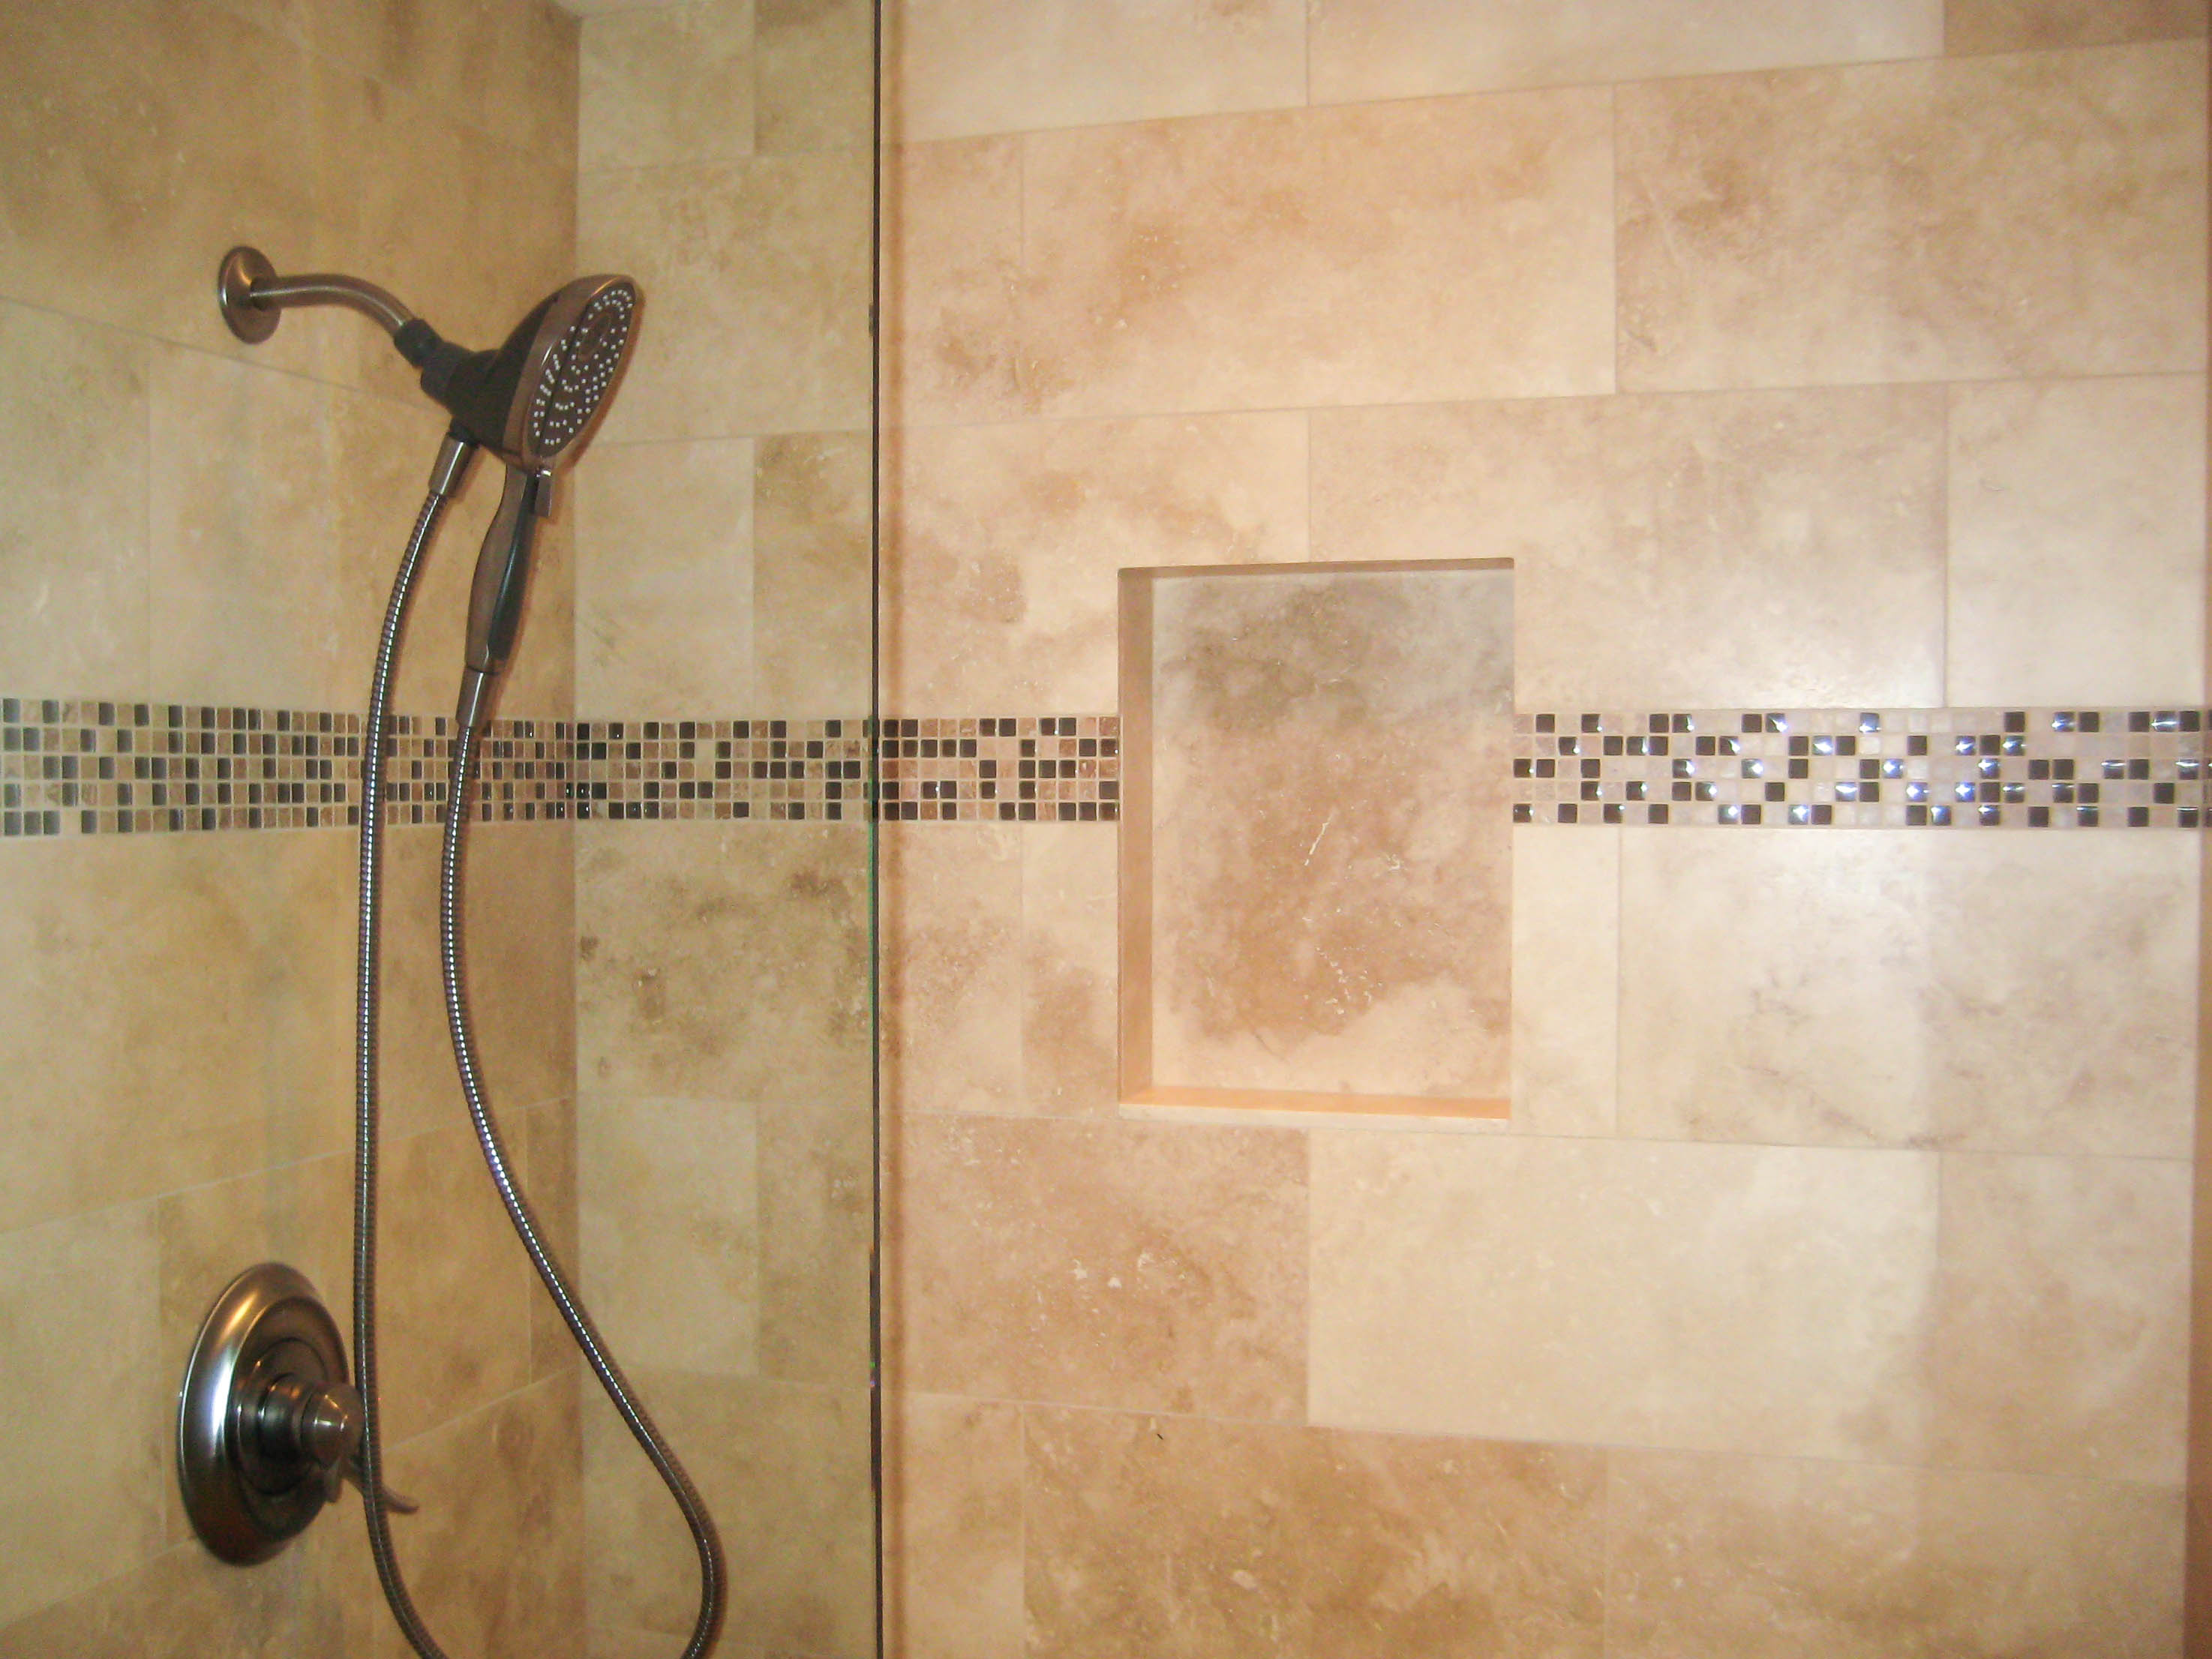 bathroom showers photos seattle tile contractor irc tile services bathroom shower 4b